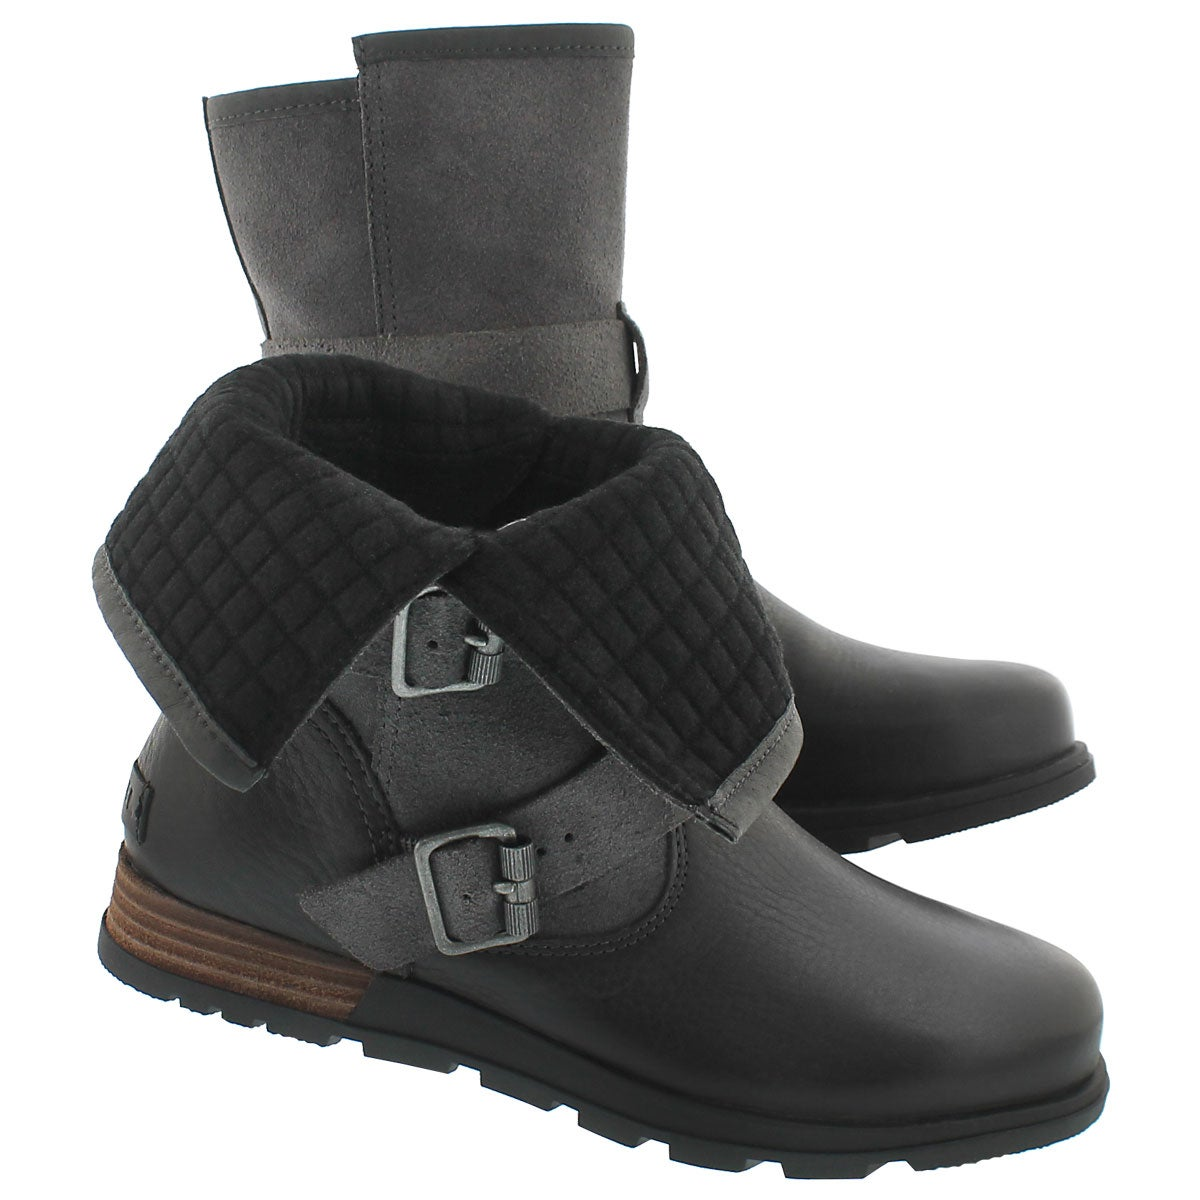 Lds MajorMoto dkgry fold down ankle boot